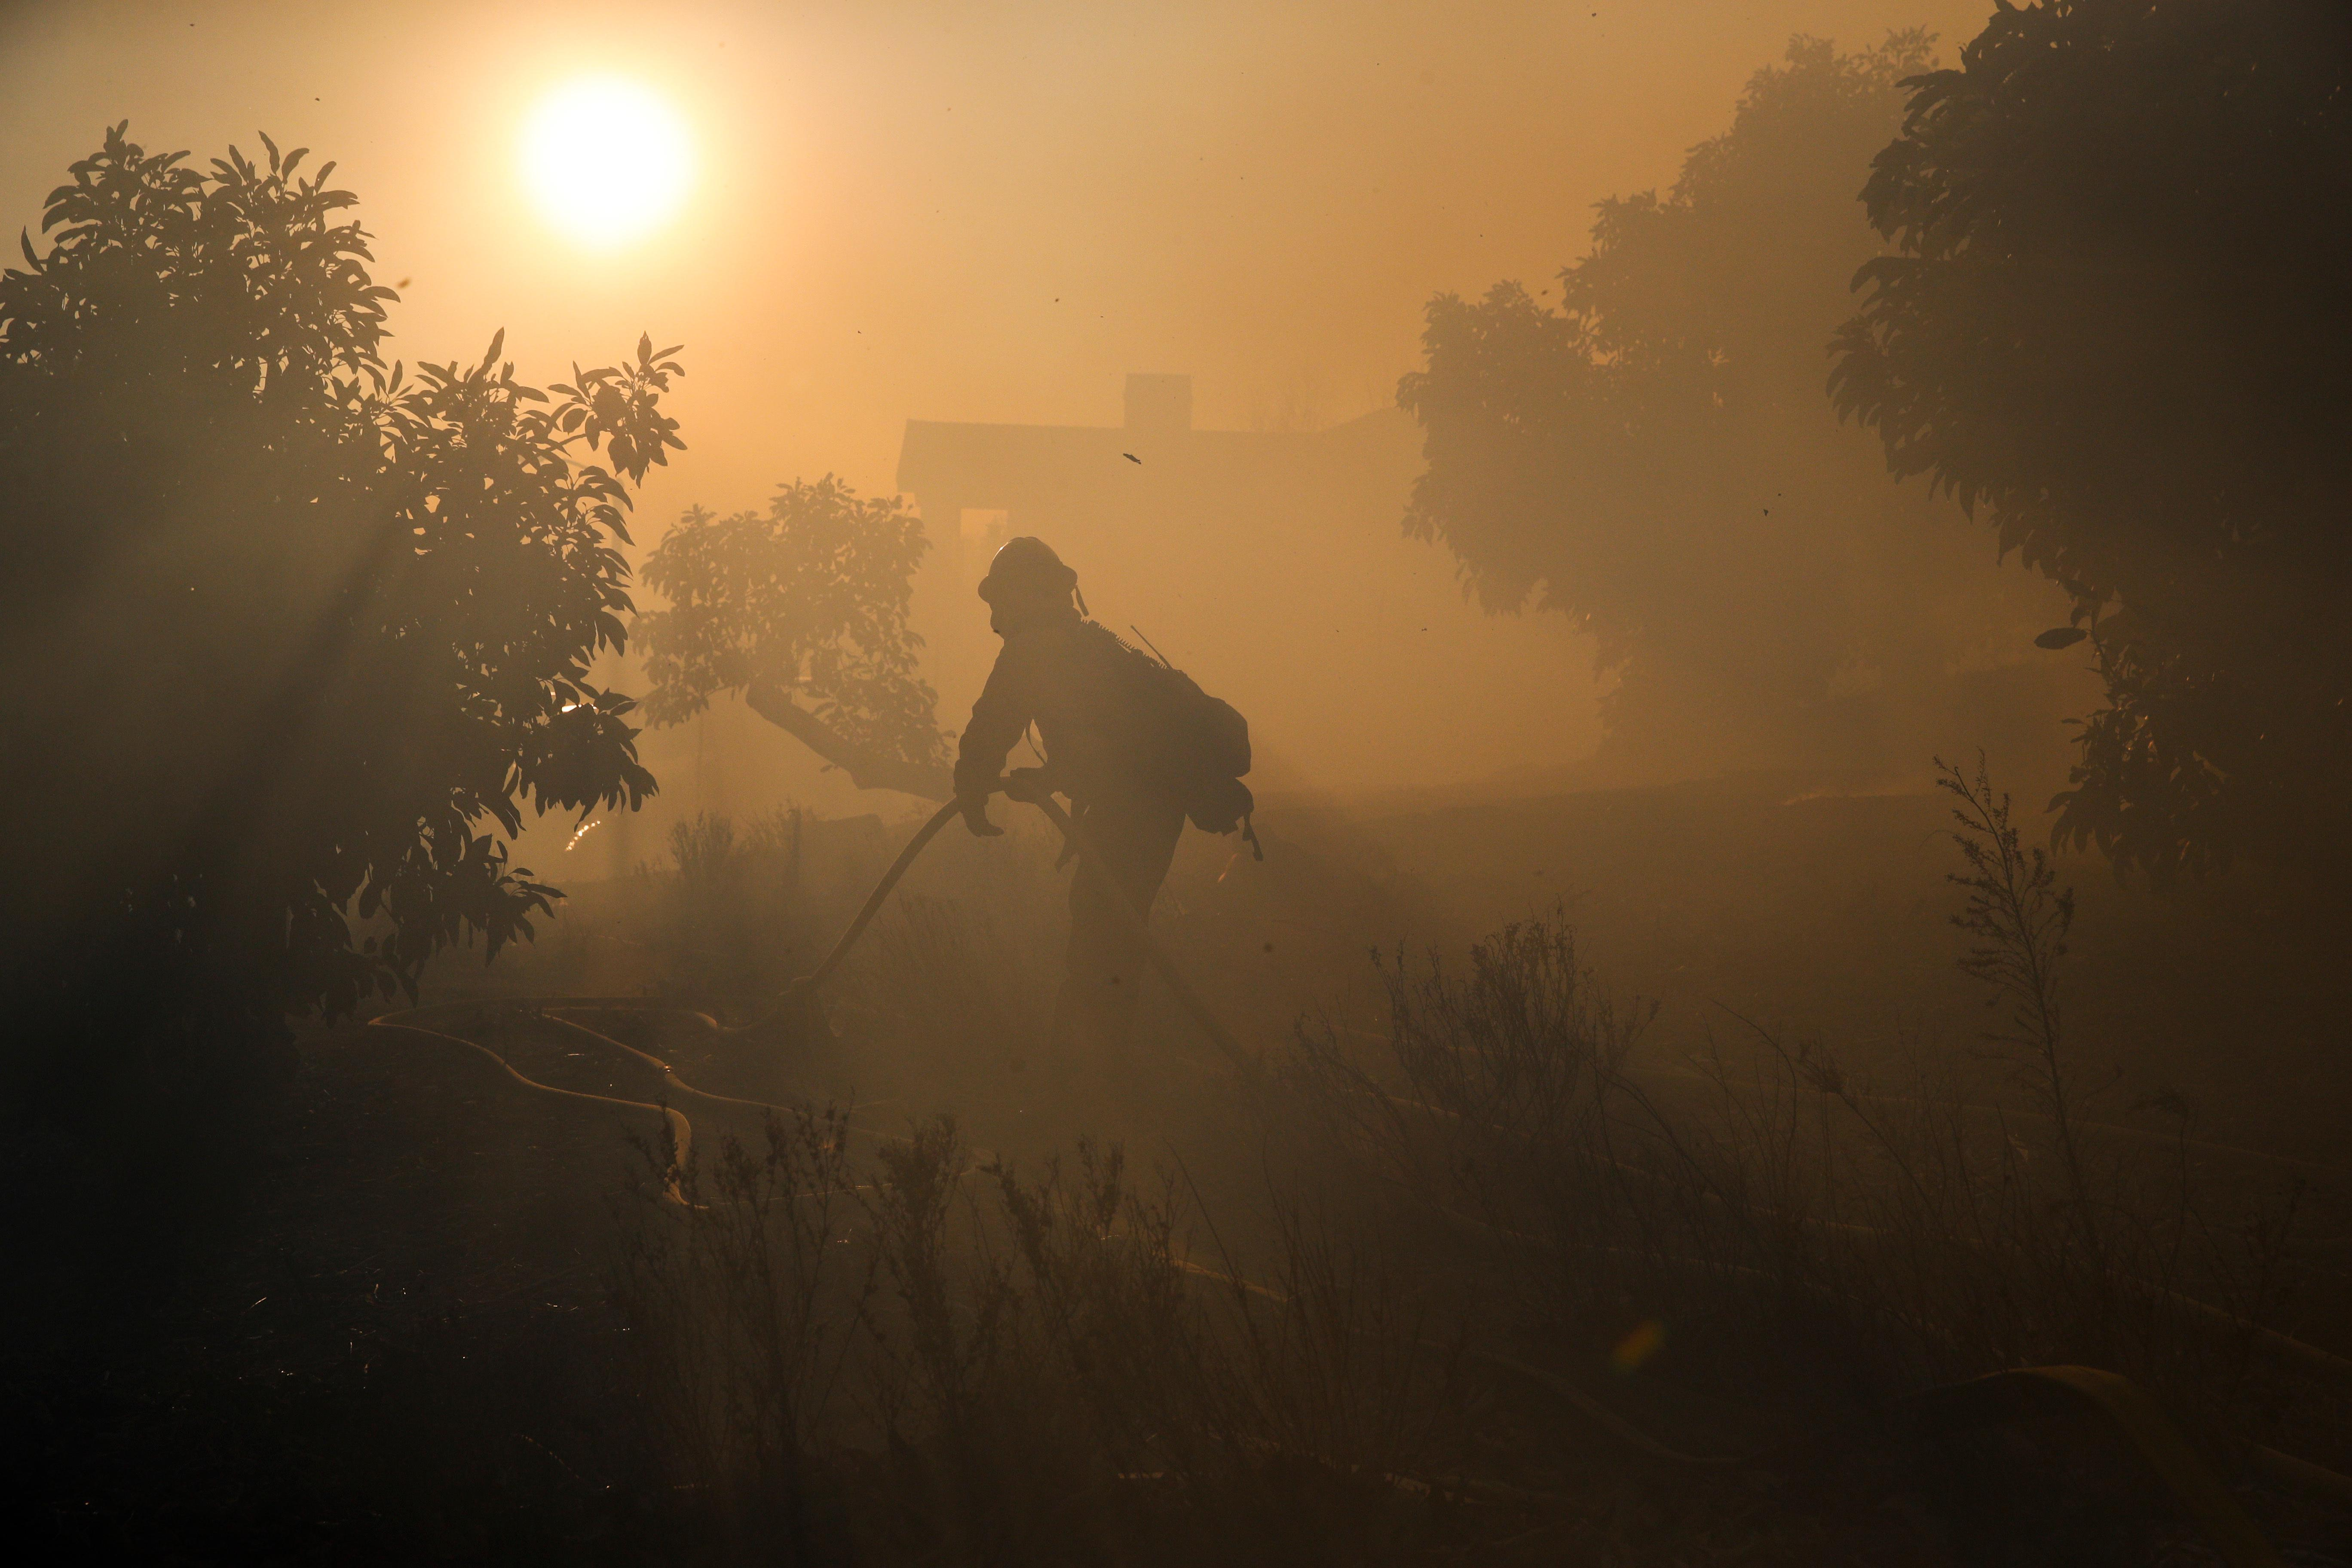 A firefighter pulls a water hose as a wildfires continues to burn Tuesday, Dec. 5, 2017, in Santa Paula, Calif. Raked by ferocious Santa Ana winds, explosive wildfires northwest of Los Angeles and in the city's foothills burned a psychiatric hospital and scores of homes and other structures Tuesday and forced the evacuation of tens of thousands of people. (AP Photo/Jae C. Hong)